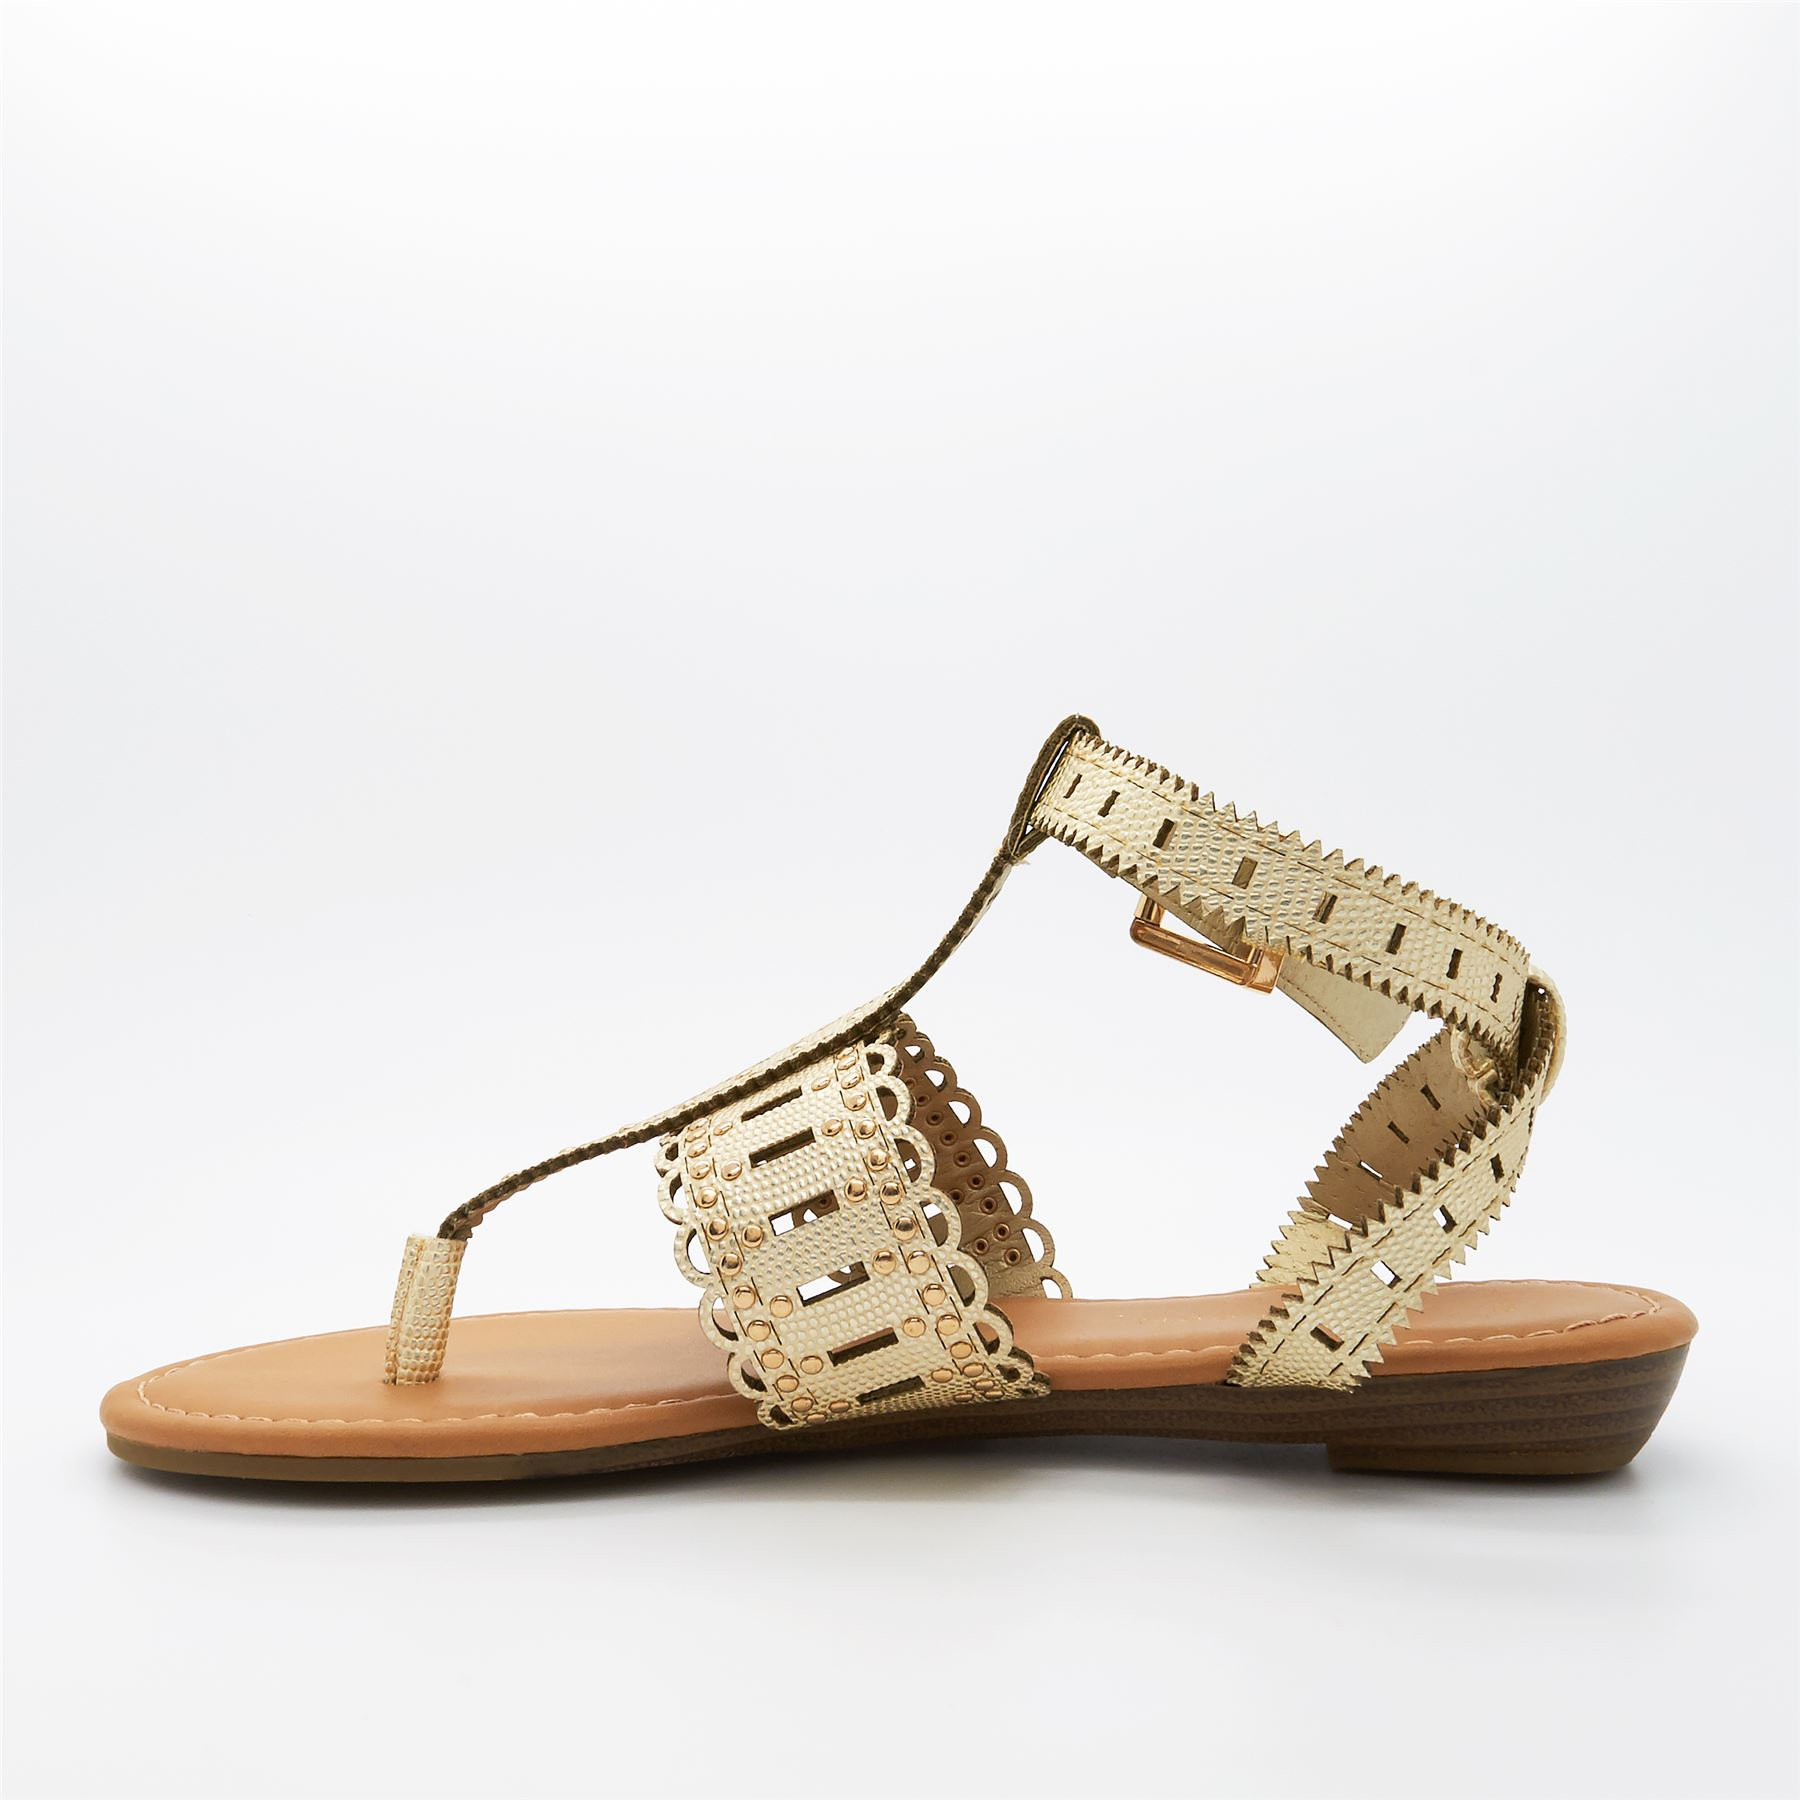 Womens sandals new look - New Look Shoes Ladies Summer New Toe Post